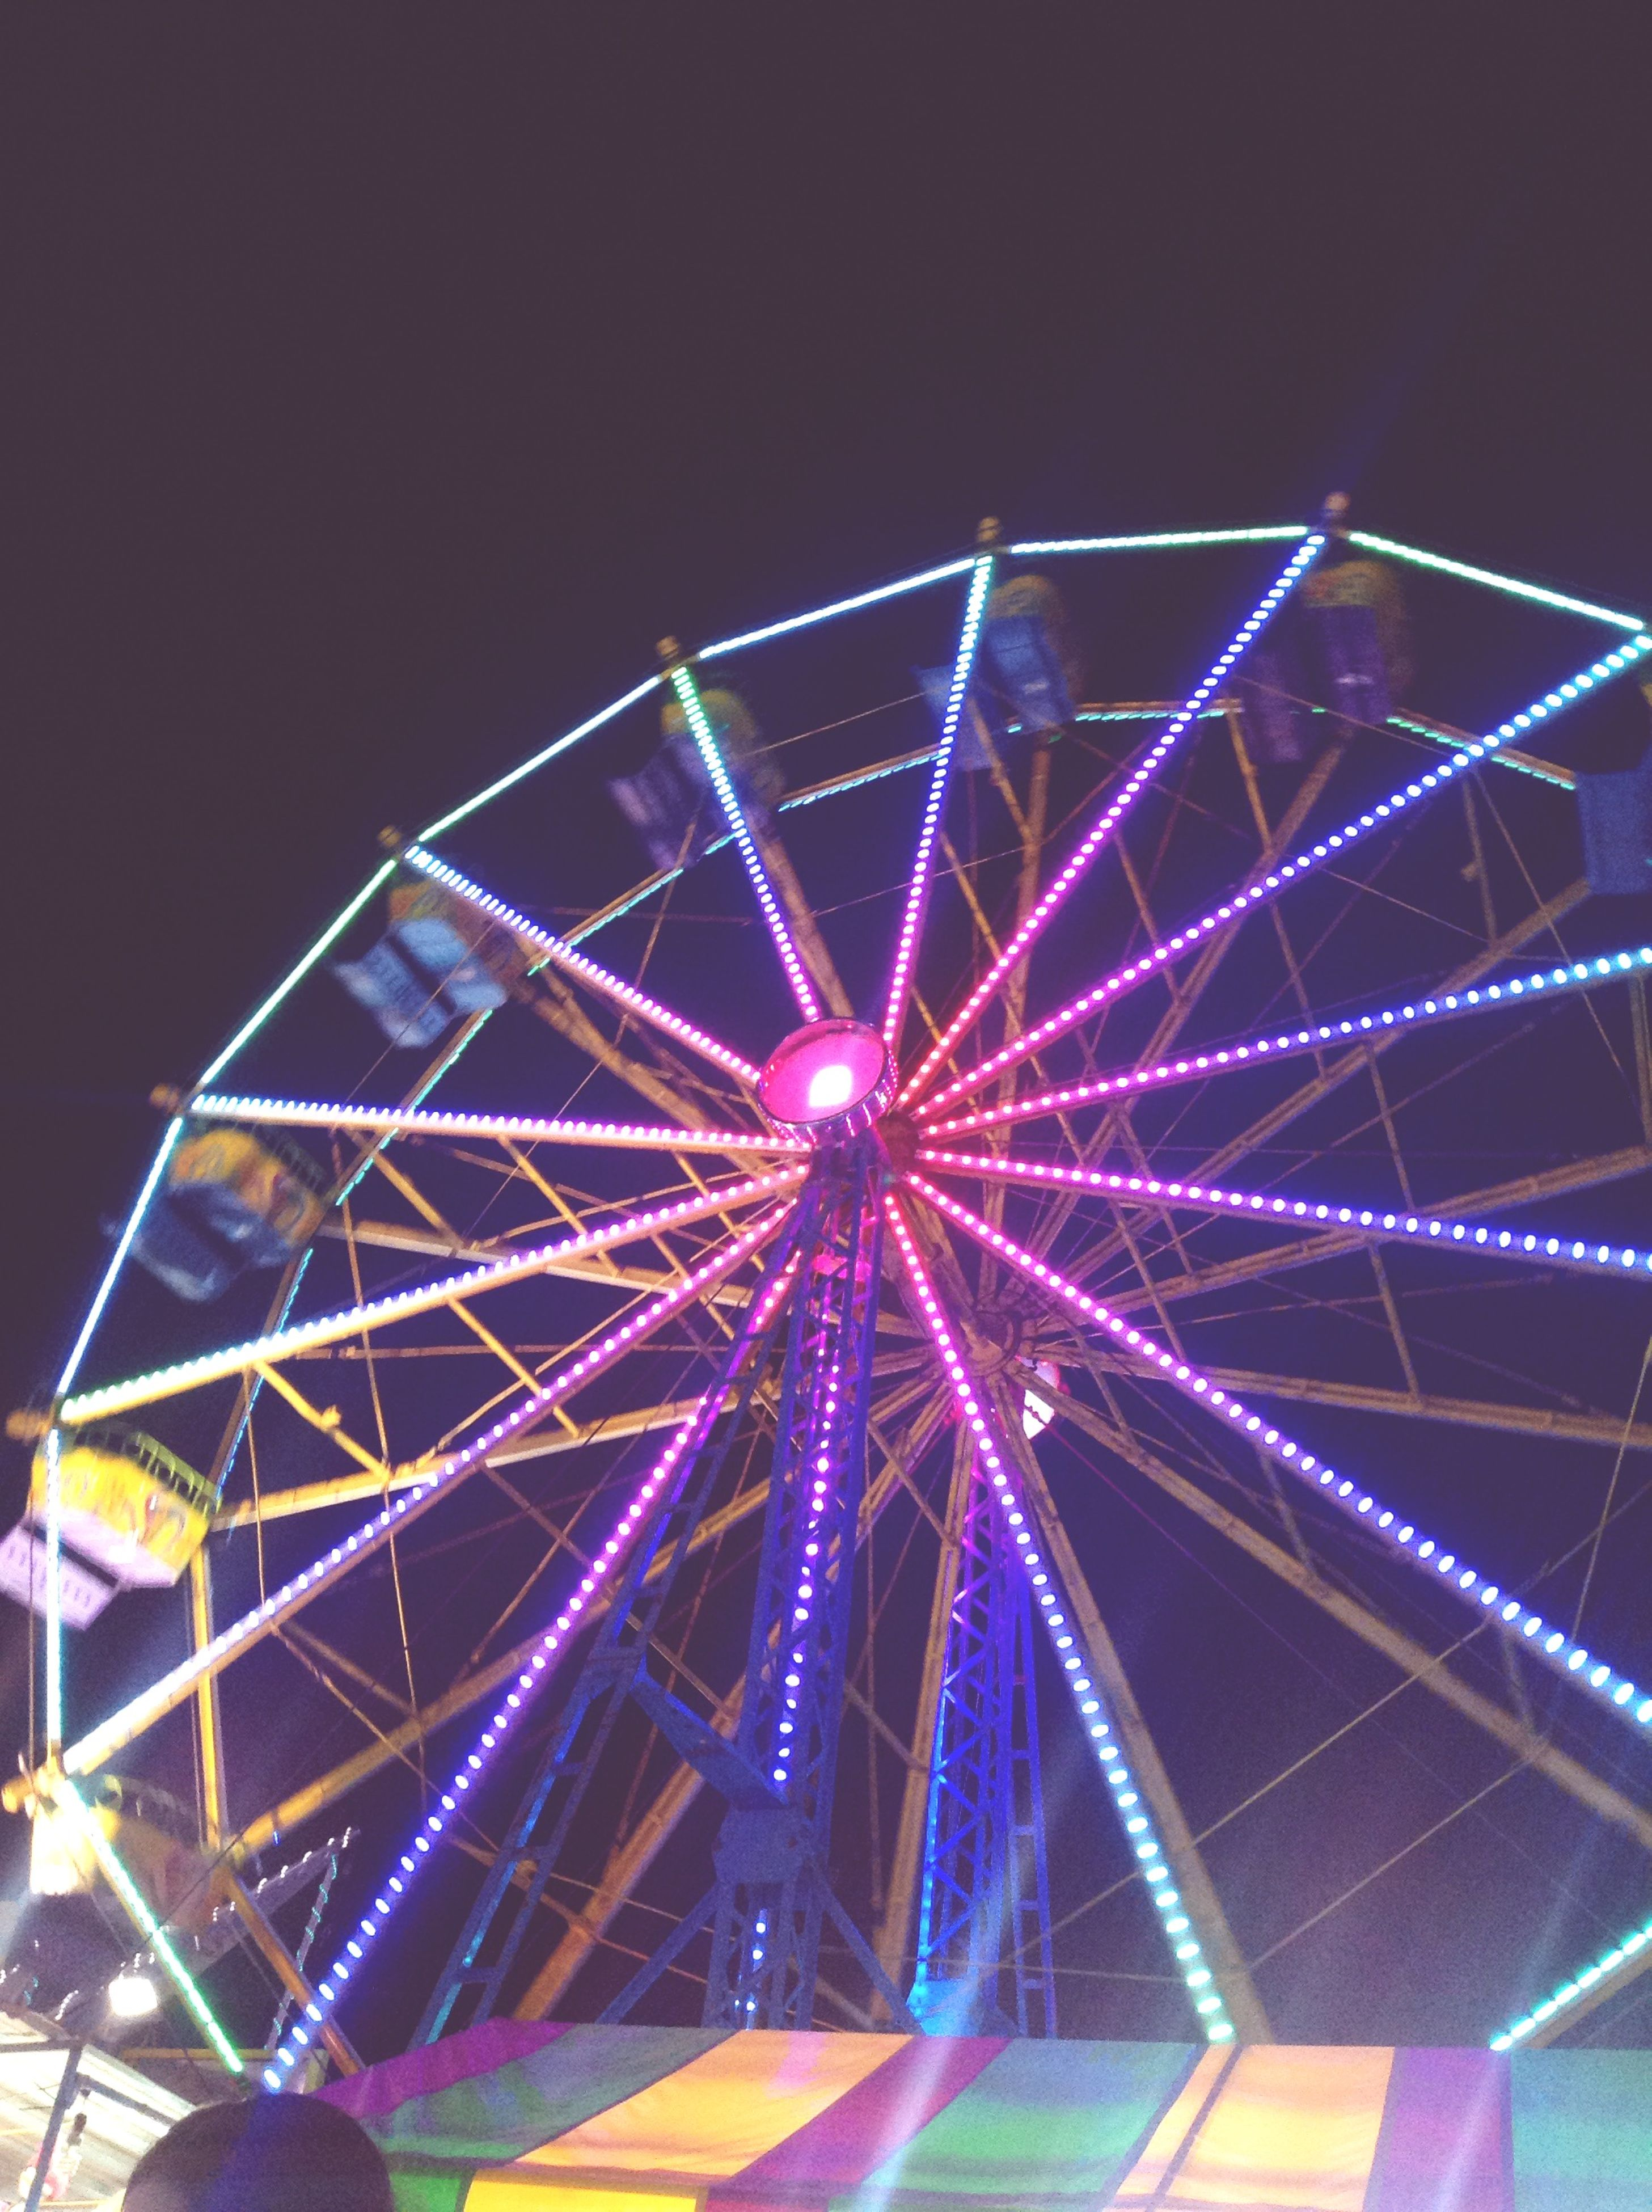 illuminated, arts culture and entertainment, night, amusement park ride, amusement park, ferris wheel, low angle view, sky, multi colored, built structure, clear sky, lighting equipment, fun, architecture, outdoors, glowing, motion, enjoyment, no people, long exposure